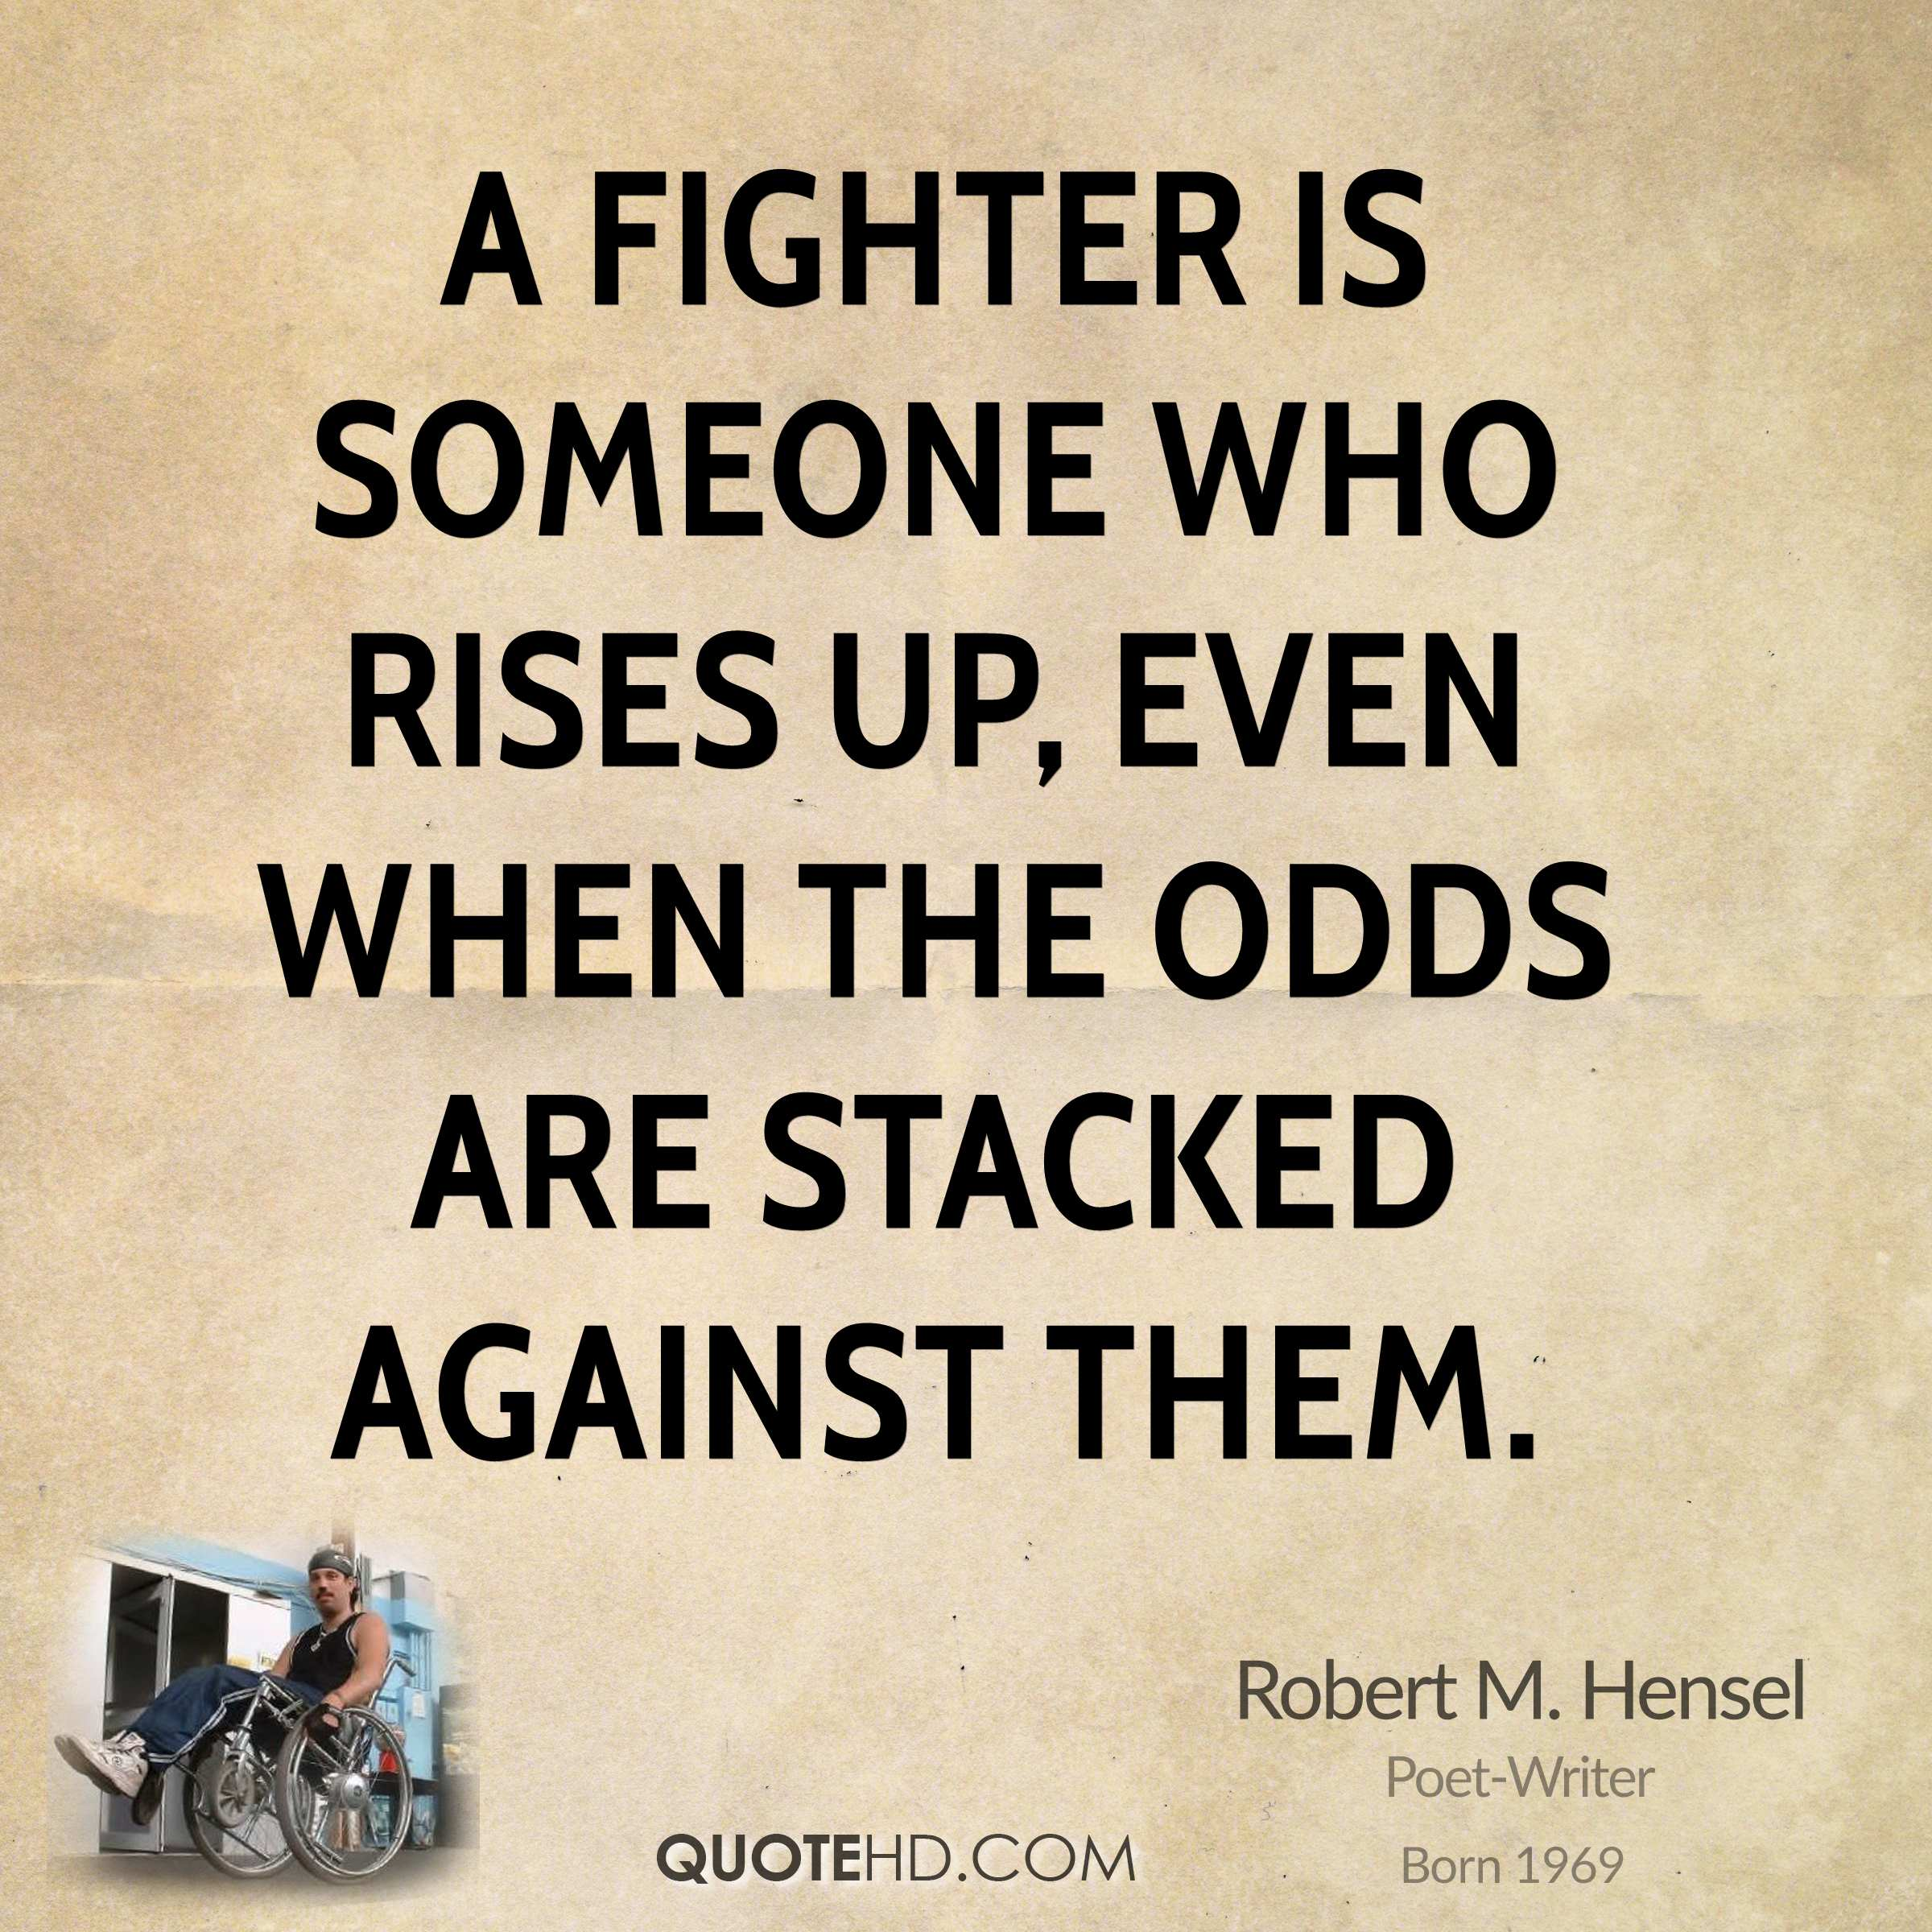 A fighter is someone who rises up, even when the odds are stacked against them.